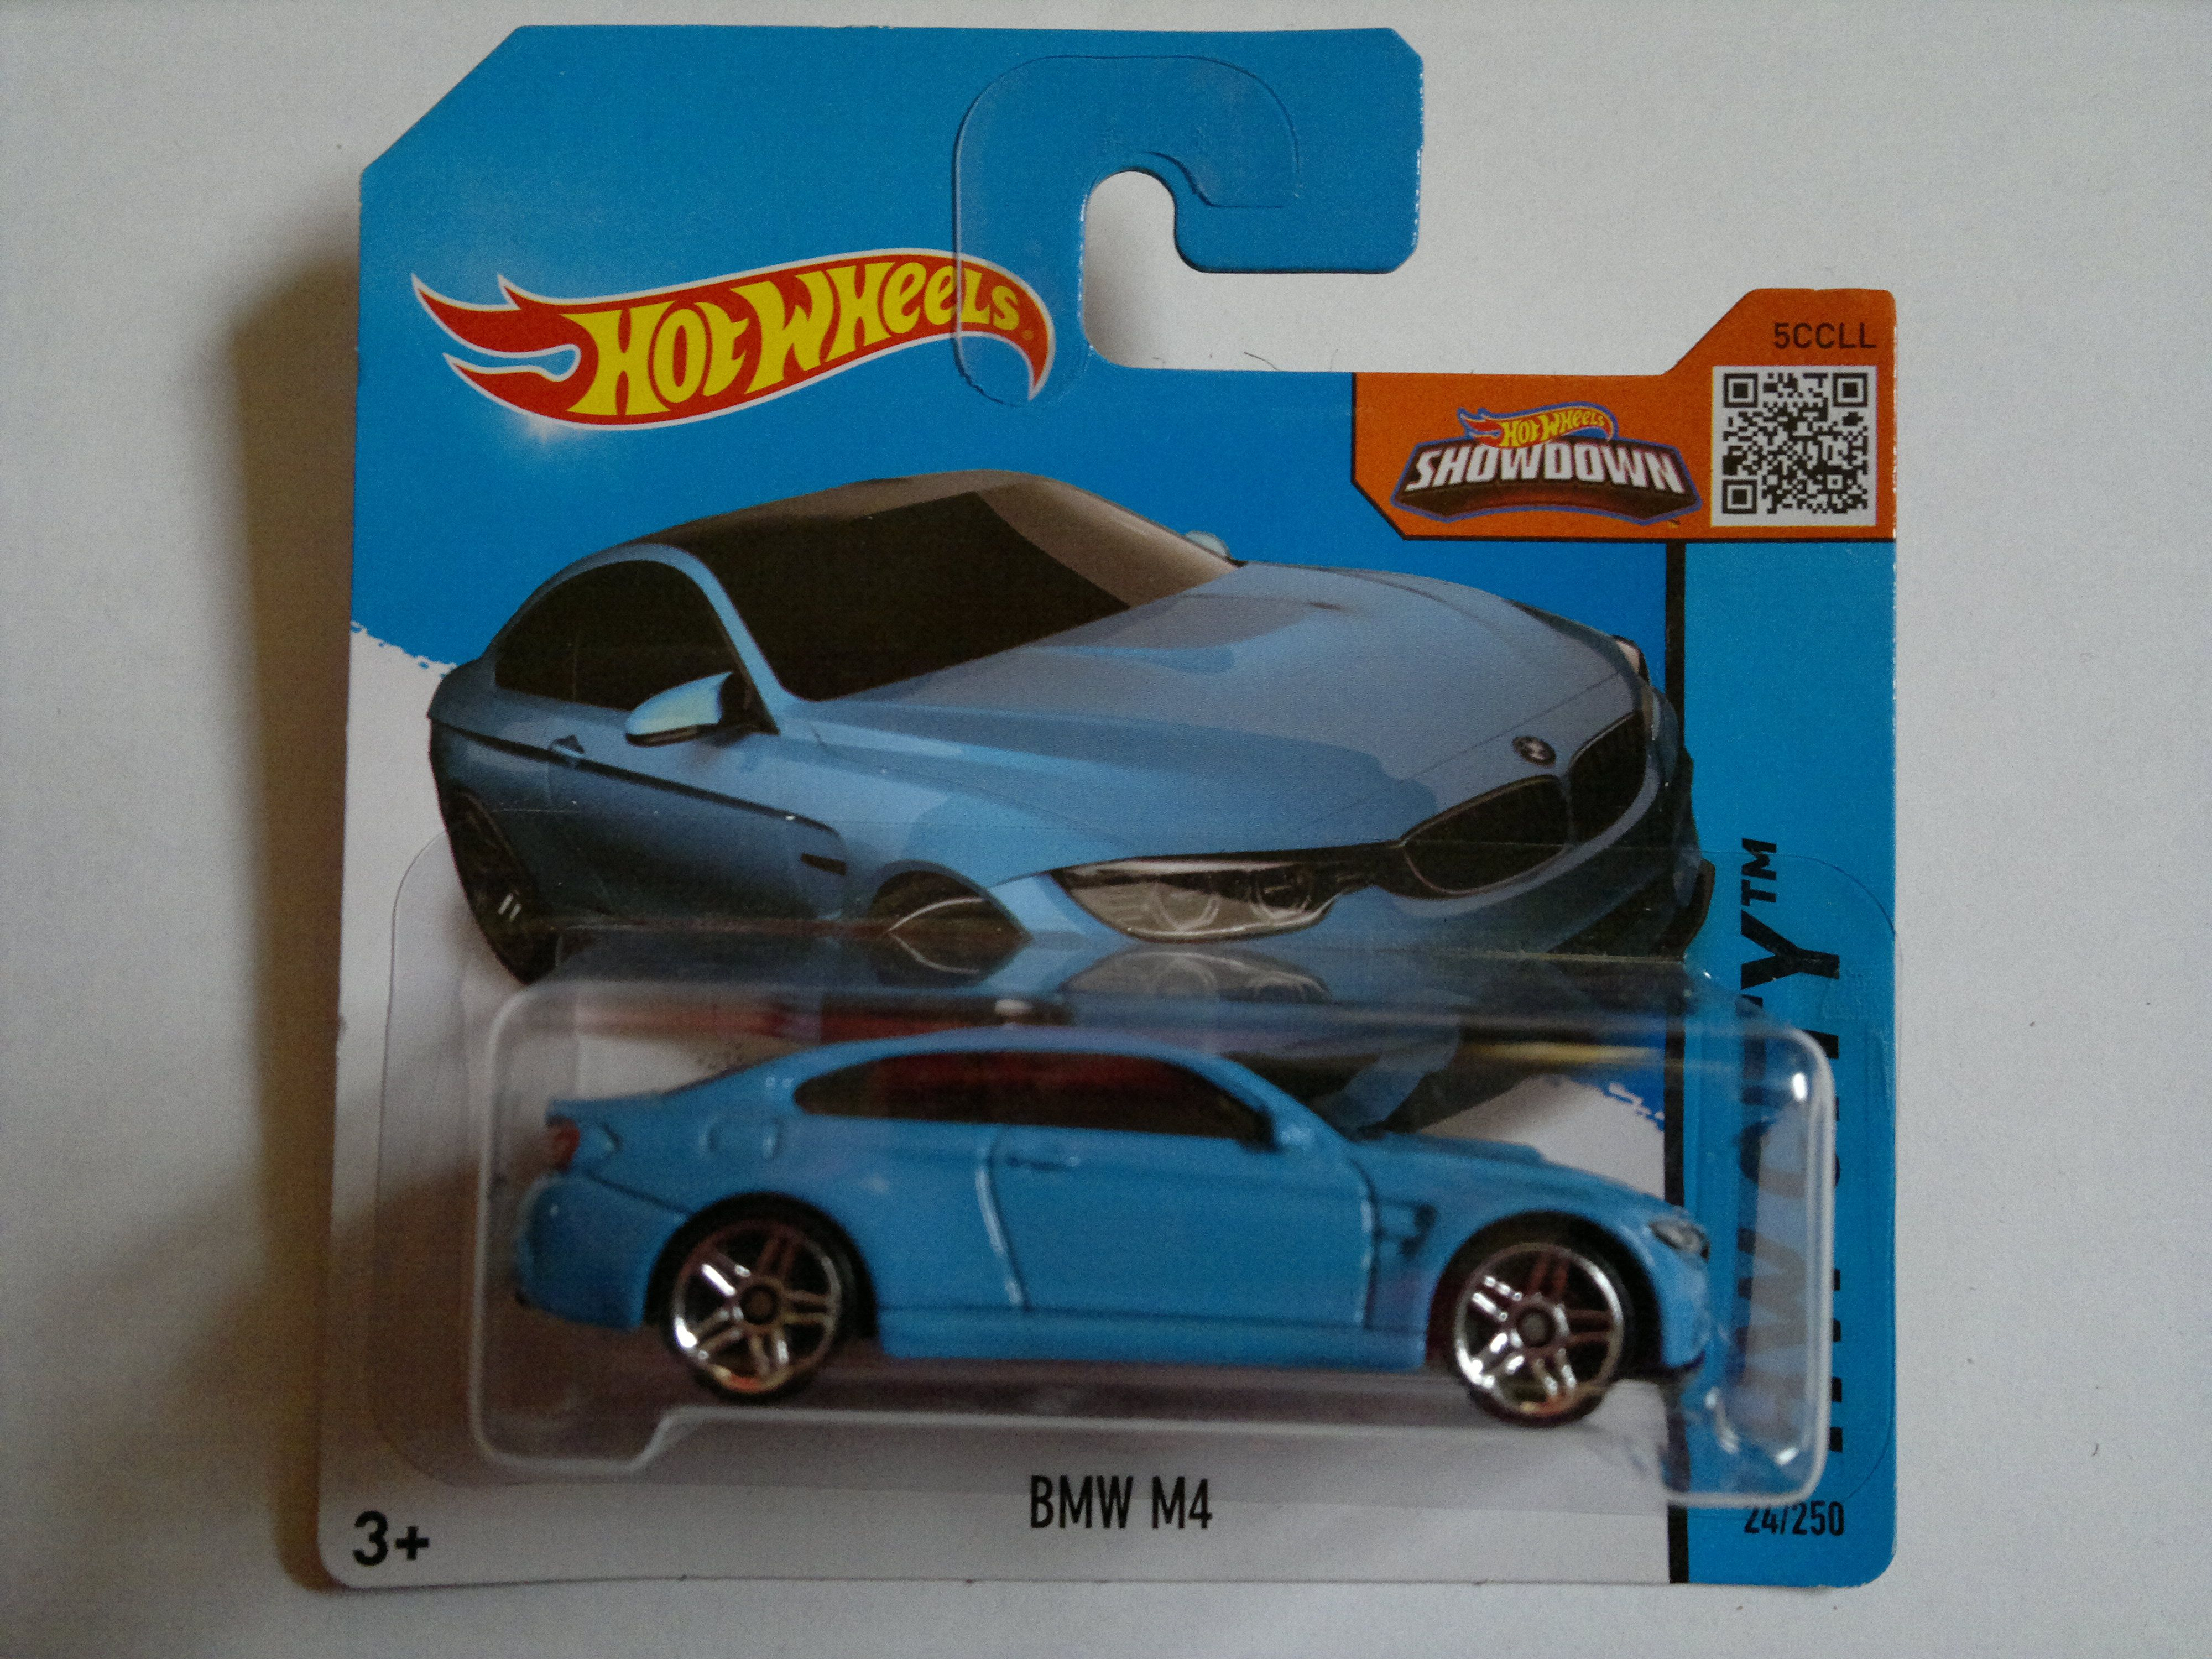 2015 BMW M4 Hot Wheels Hot Wheels collection 1 64